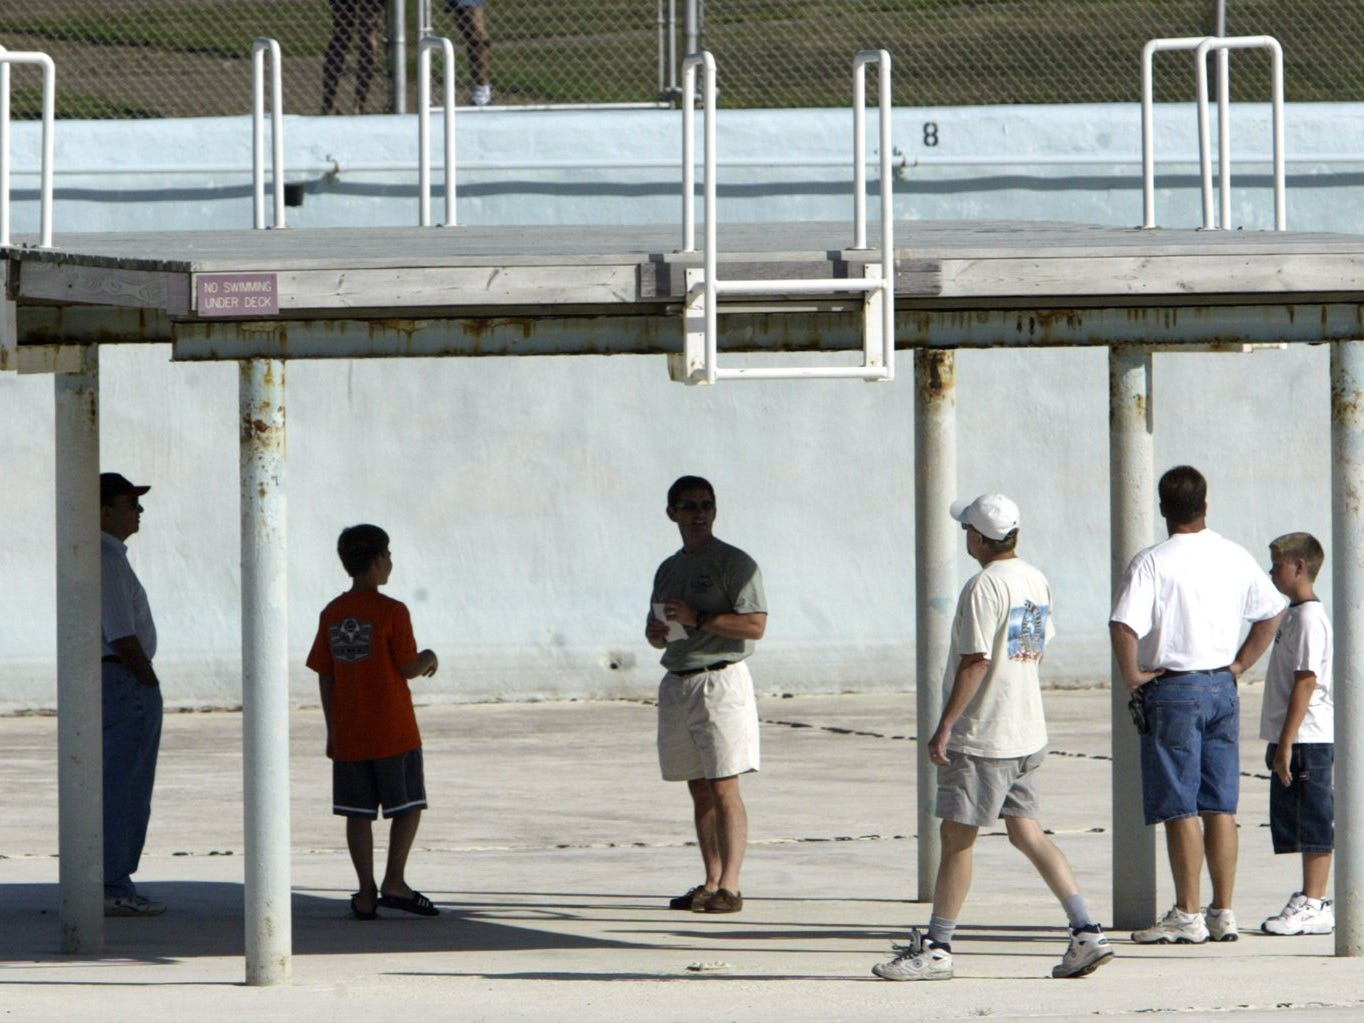 From 2003:  Johnston city leaders and residents interested in renovating the Camp Dodge Pool take a tour of the empty facility. City employees met afterward with National Guard engineers to discuss options on the future of the pool, which never reopened.